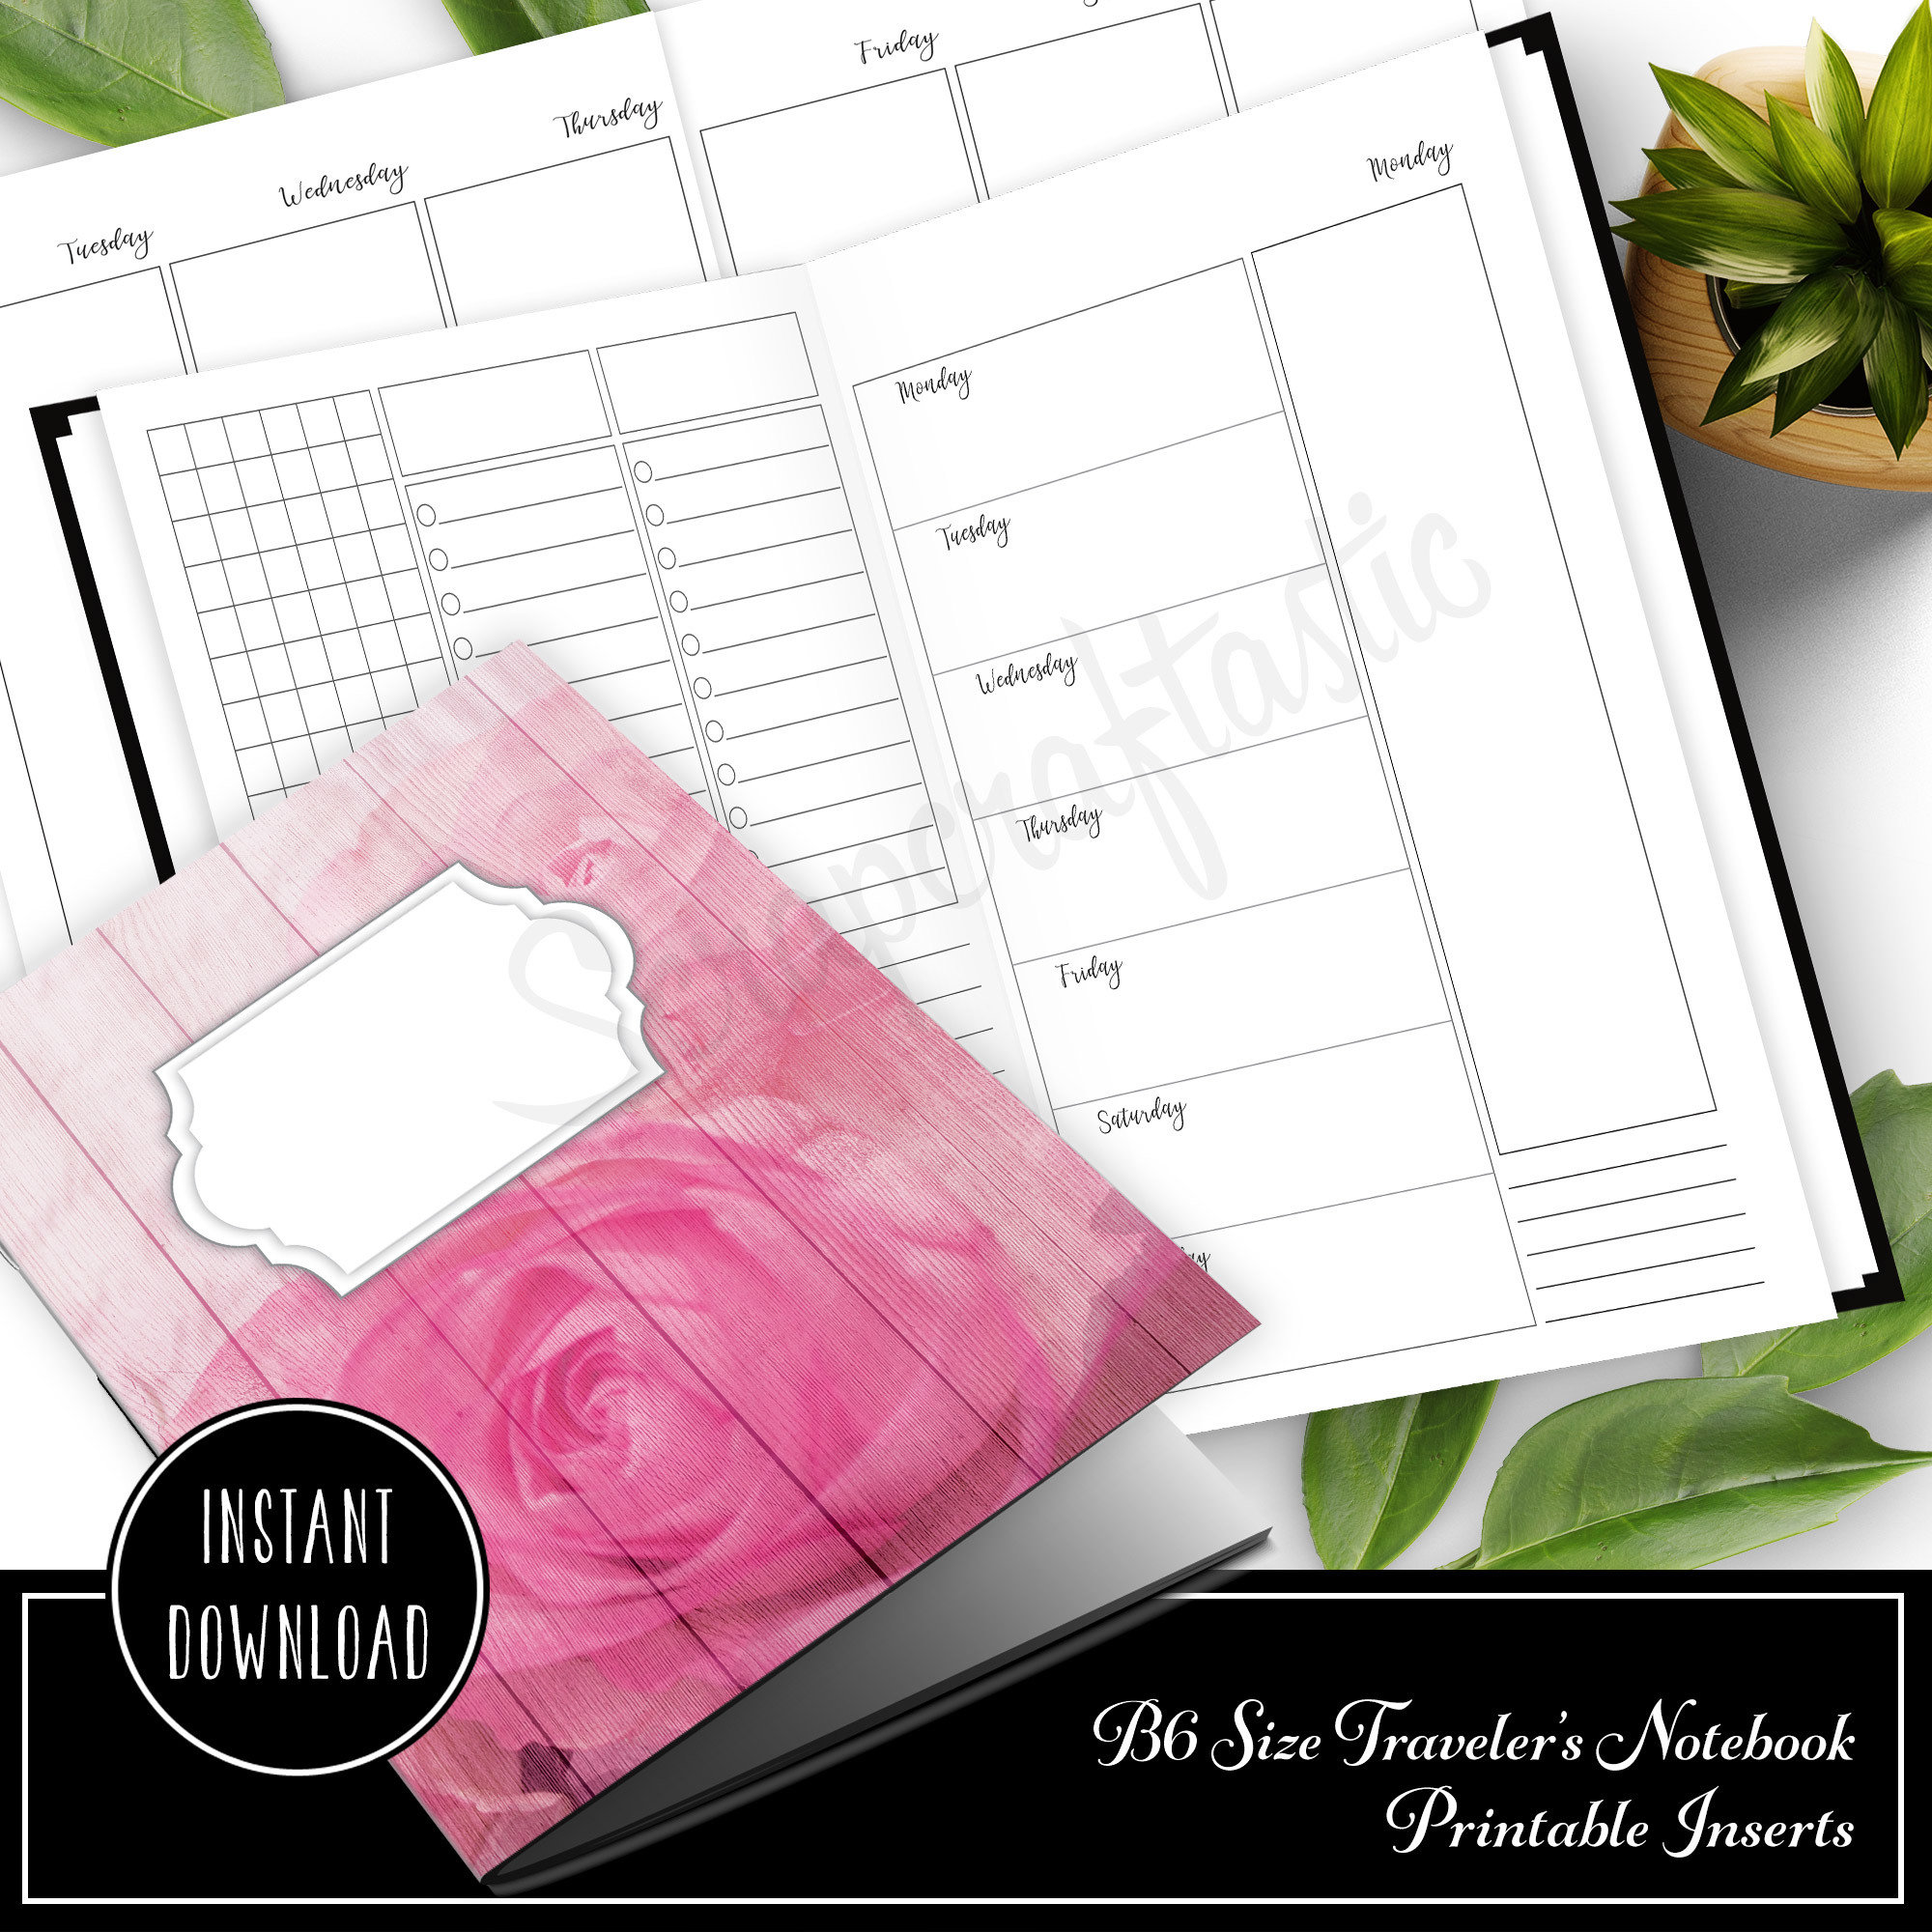 Deluxe Week on Four Pages (WO4P) B6 Traveler's Notebook Printable Inserts 50029